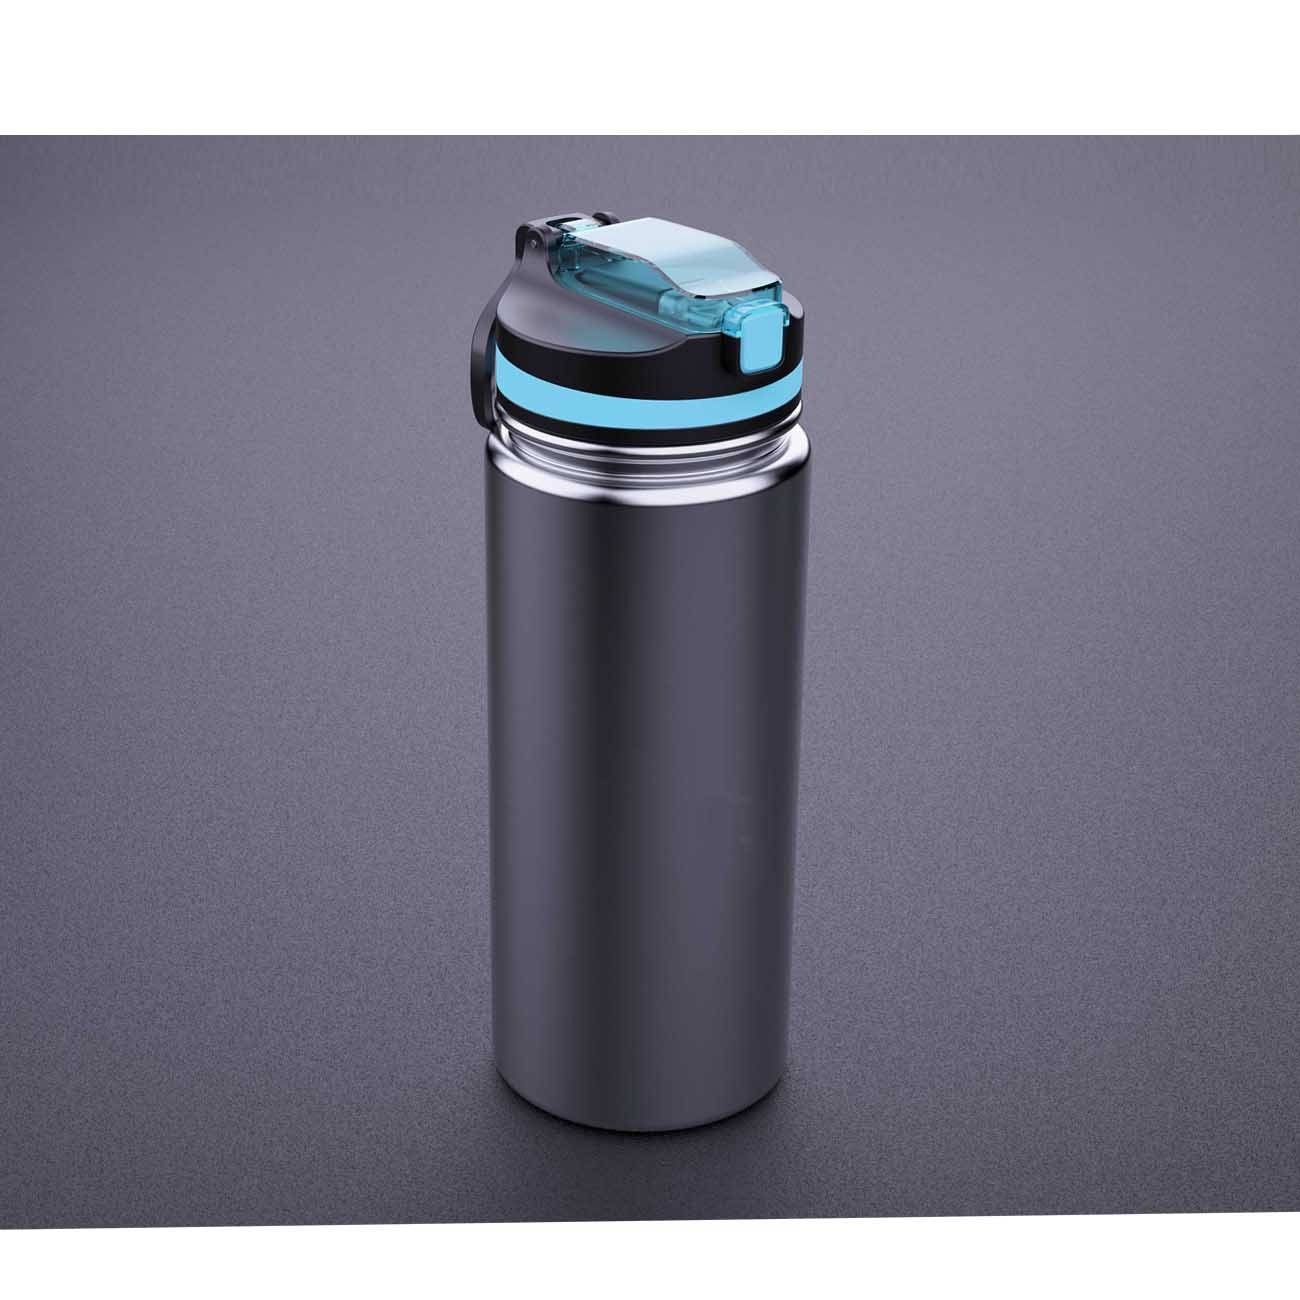 Purewell Stainless Steel Vacuum Water Filter Bottle K8638